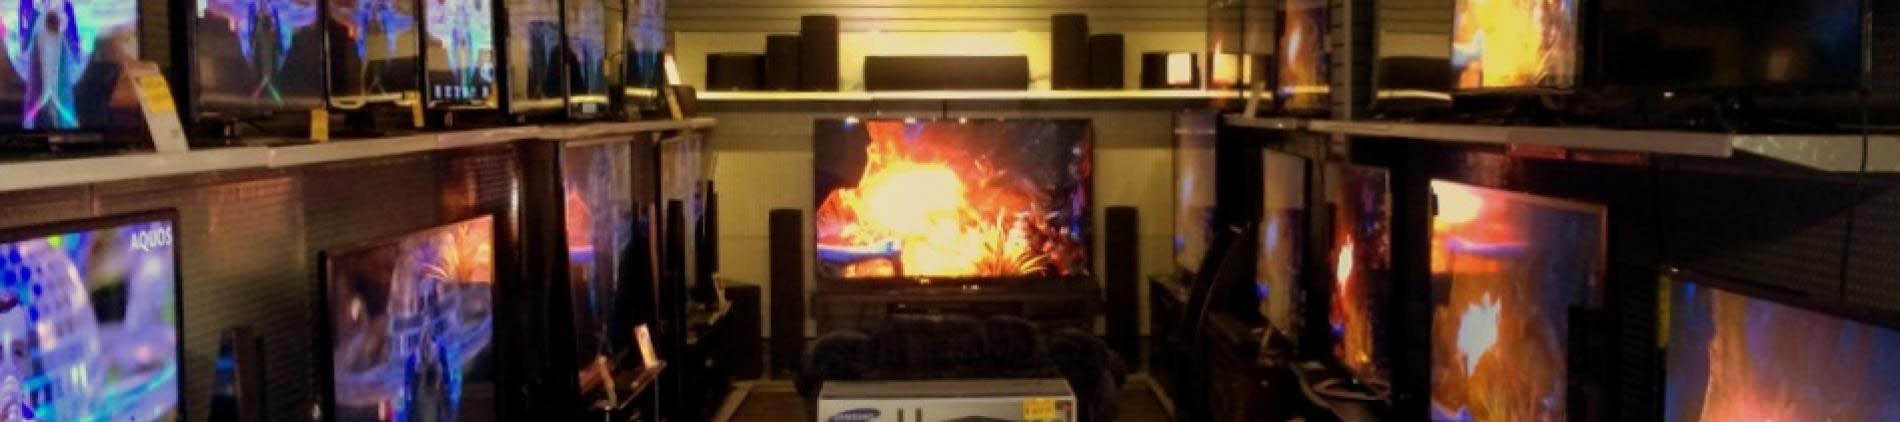 The Latest T.V.s in Stock!